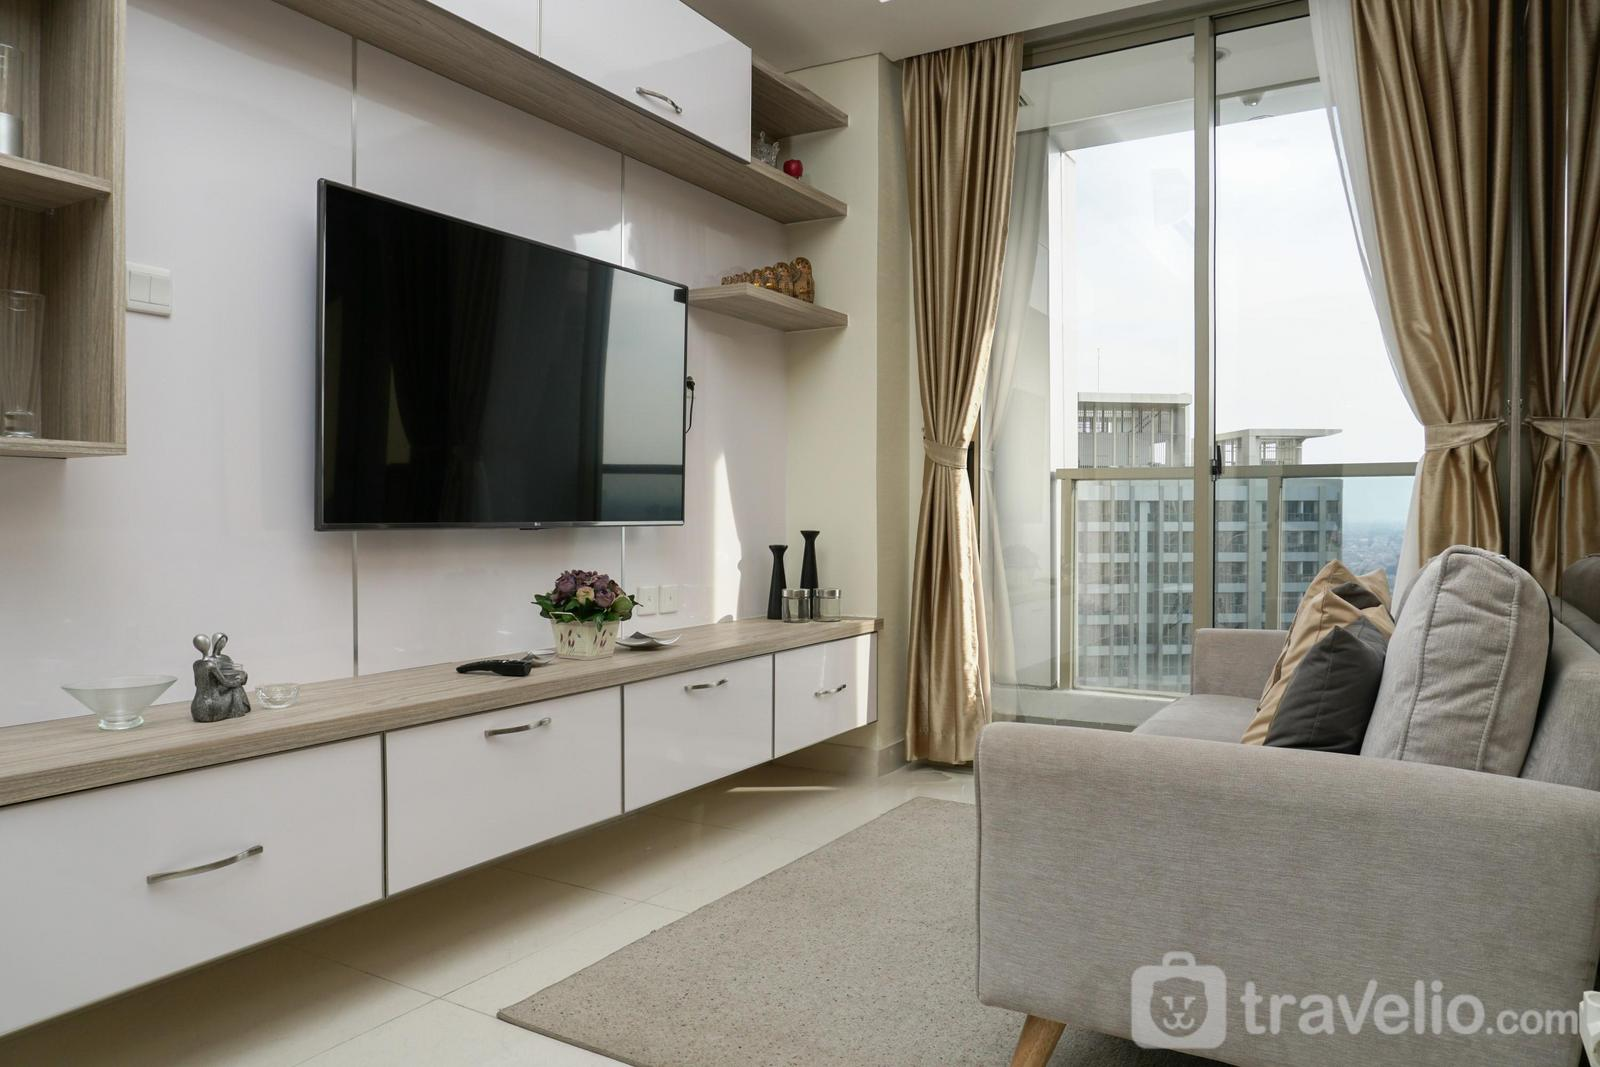 Taman Anggrek Residence - Modern 2BR Apartment at Taman Anggrek Residence with City View By Travelio